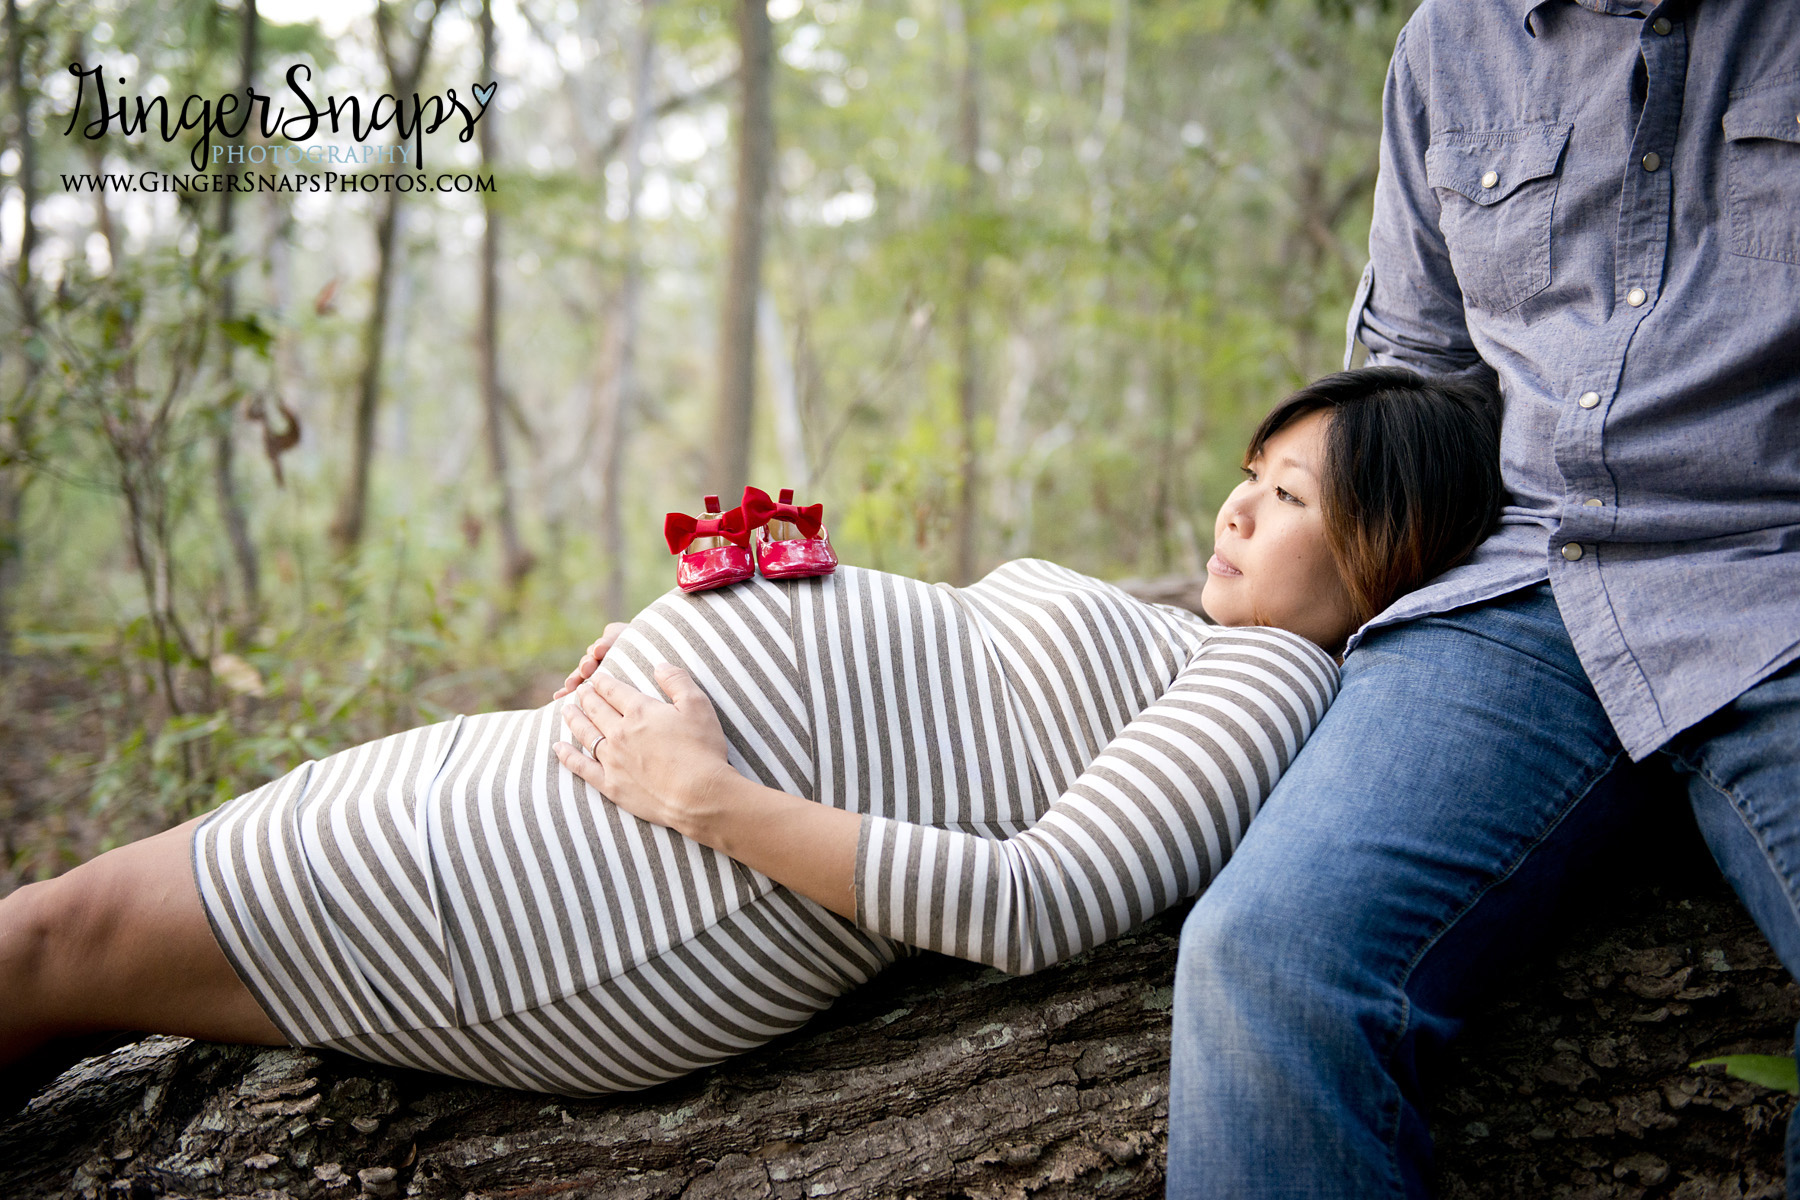 GingerSnaps Photography - 70